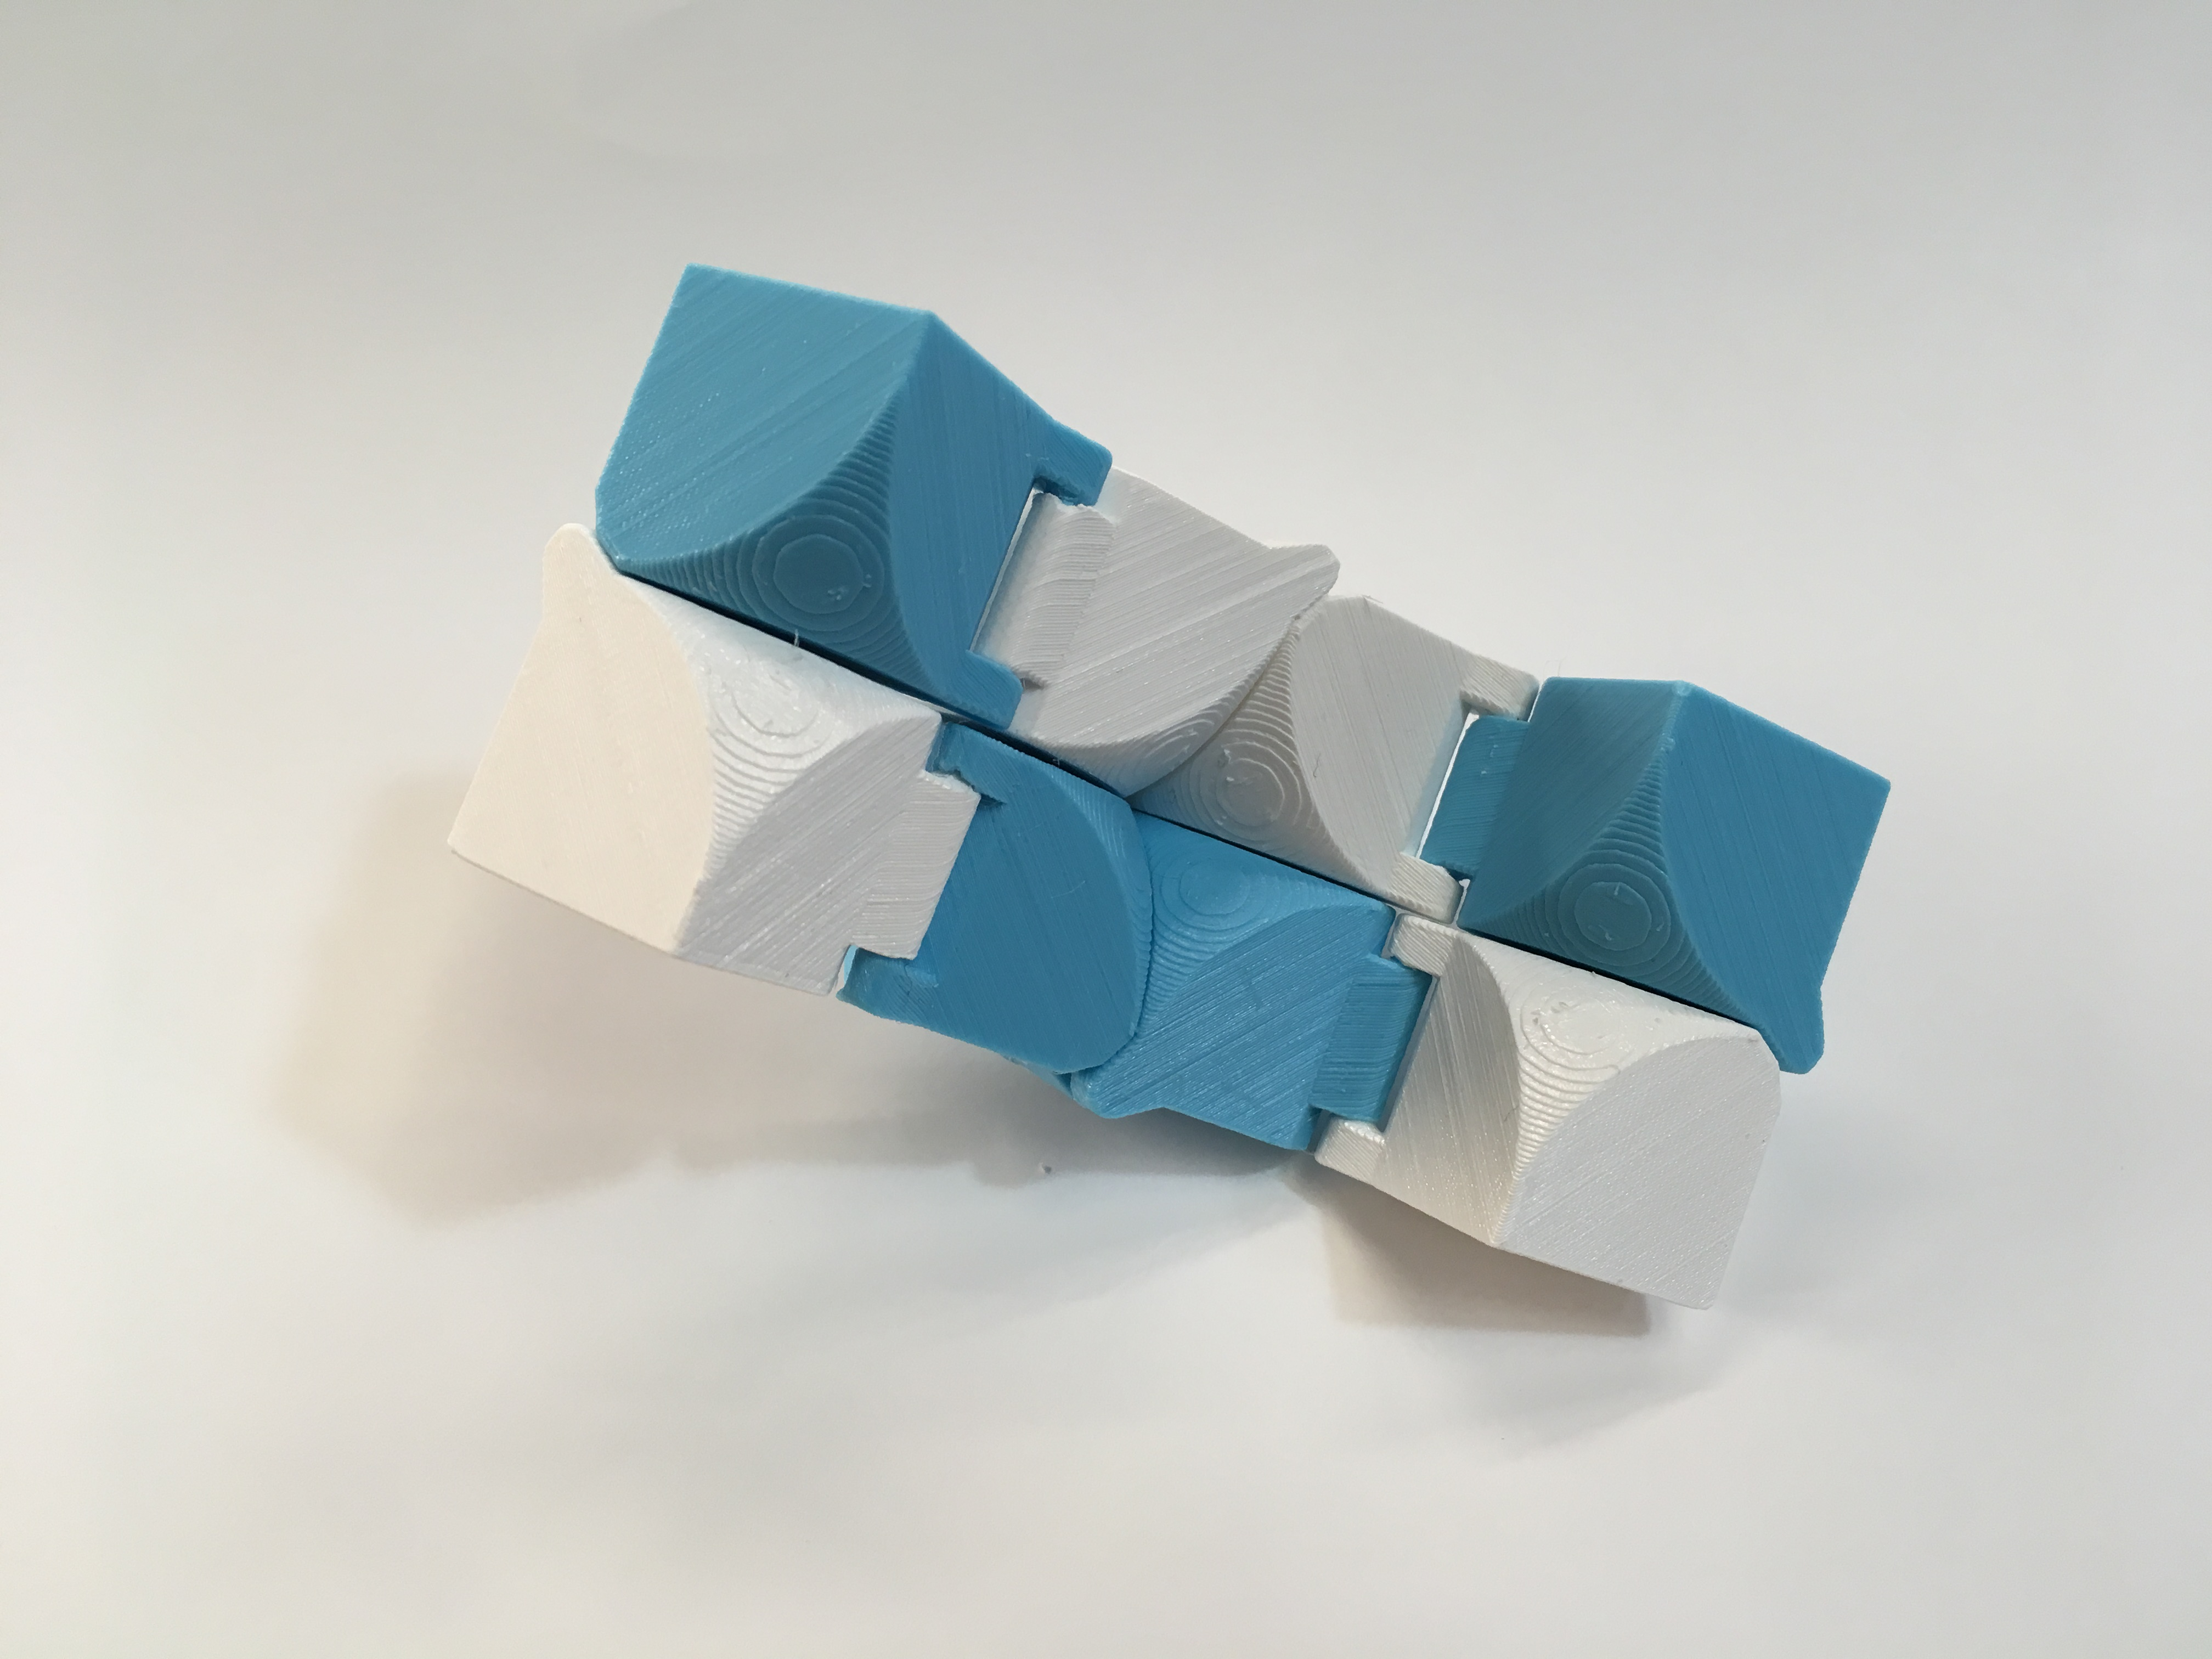 Folding Cube by sefalcone